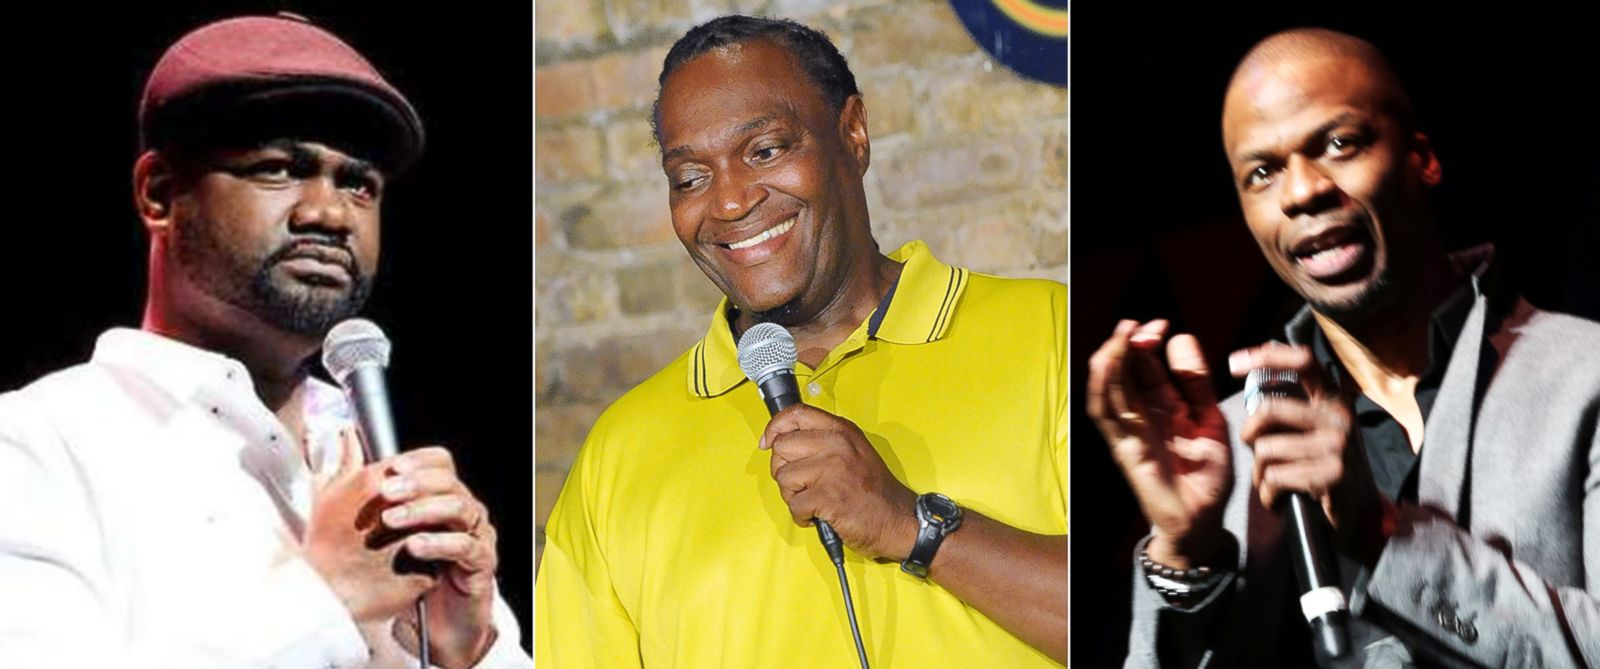 PHOTO: (L-R) Harris Stanton is shown in a photo from his Facebook, Jimmy Mack performs at The Stress Factory Comedy Club in New Brunswick, N.J., Aug. 31, 2013 and Ardie Fuqua performs at Hot 97s April Fools Comedy Show in New York City, April 1, 2013.